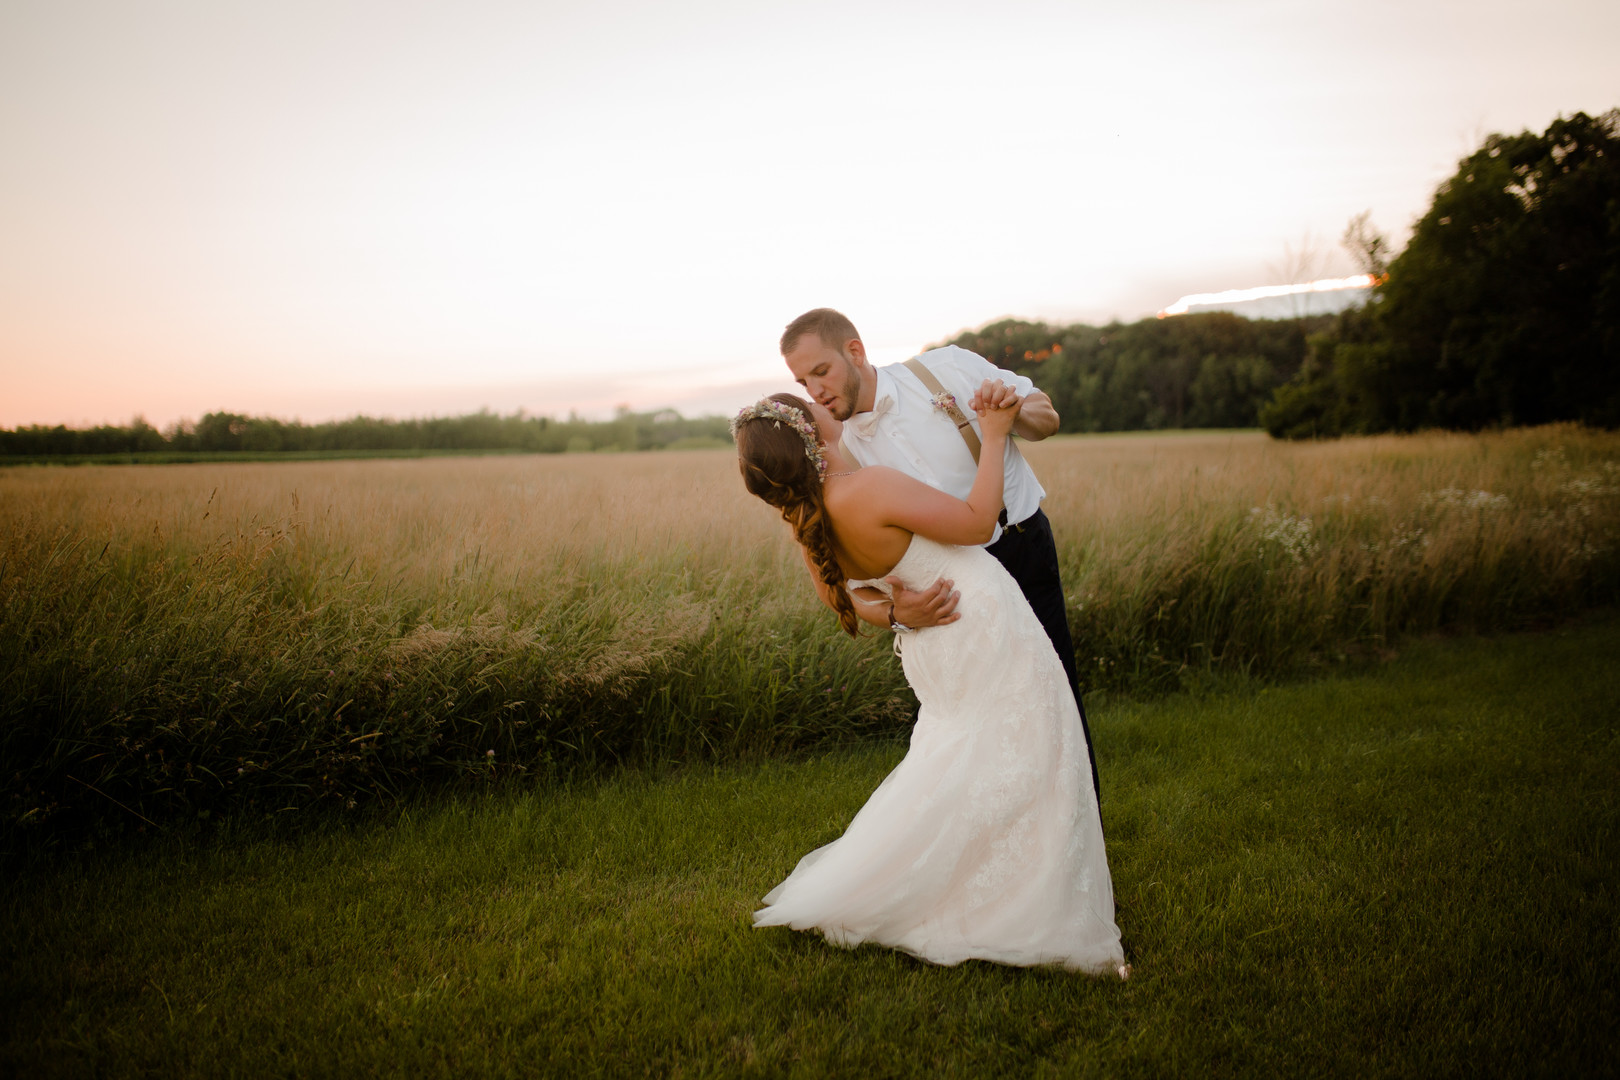 Evening wedding photos: Rustic country wedding in Minooka, IL captured by Katie Brsan Photography. Visit CHItheeWED.com for more wedding inspiration!